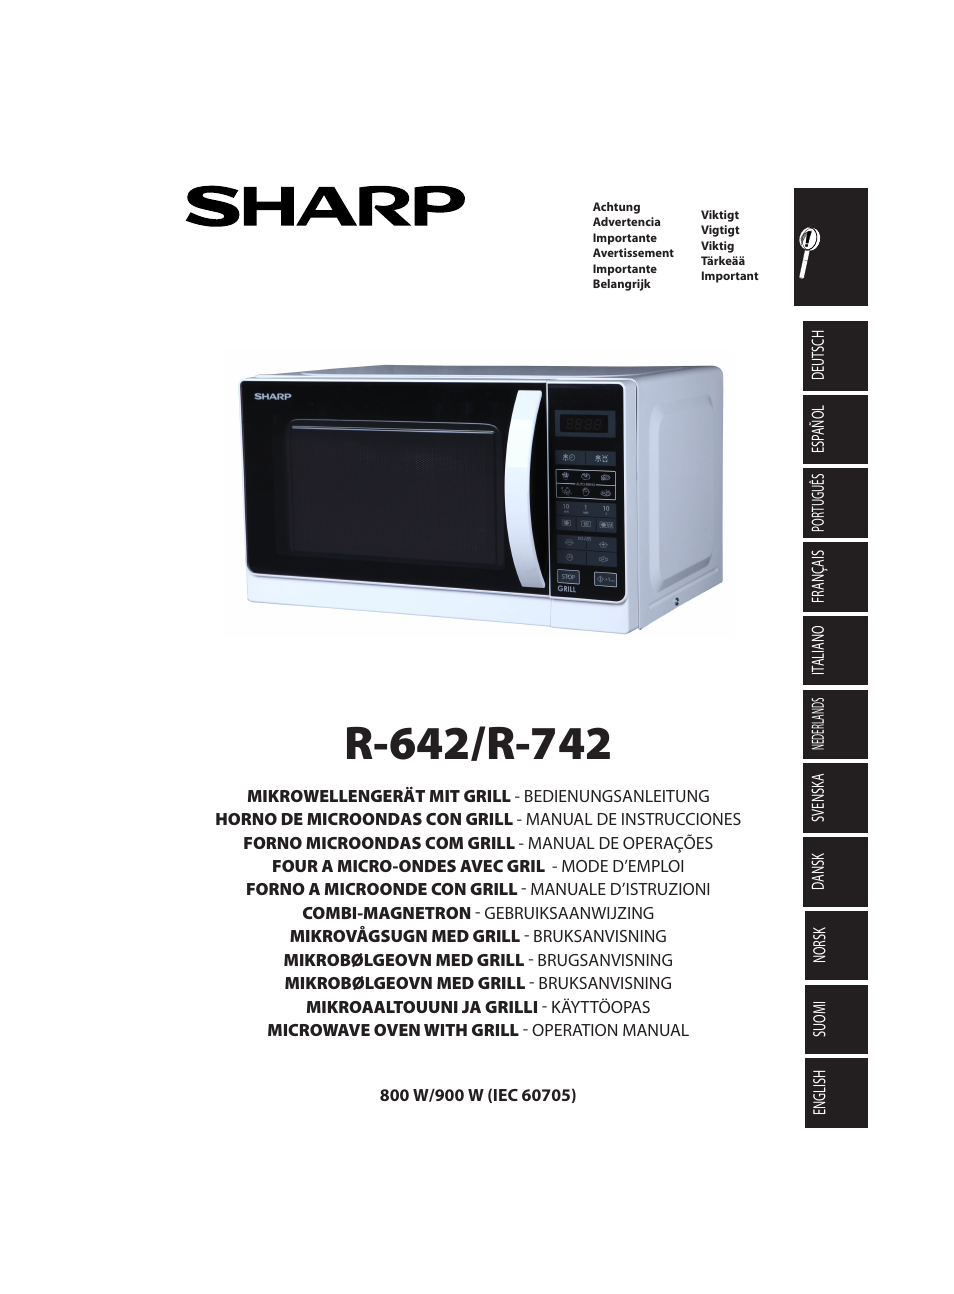 Sharp R 642bkw User Manual 180 Pages Also For 642inw 742inw 642ww